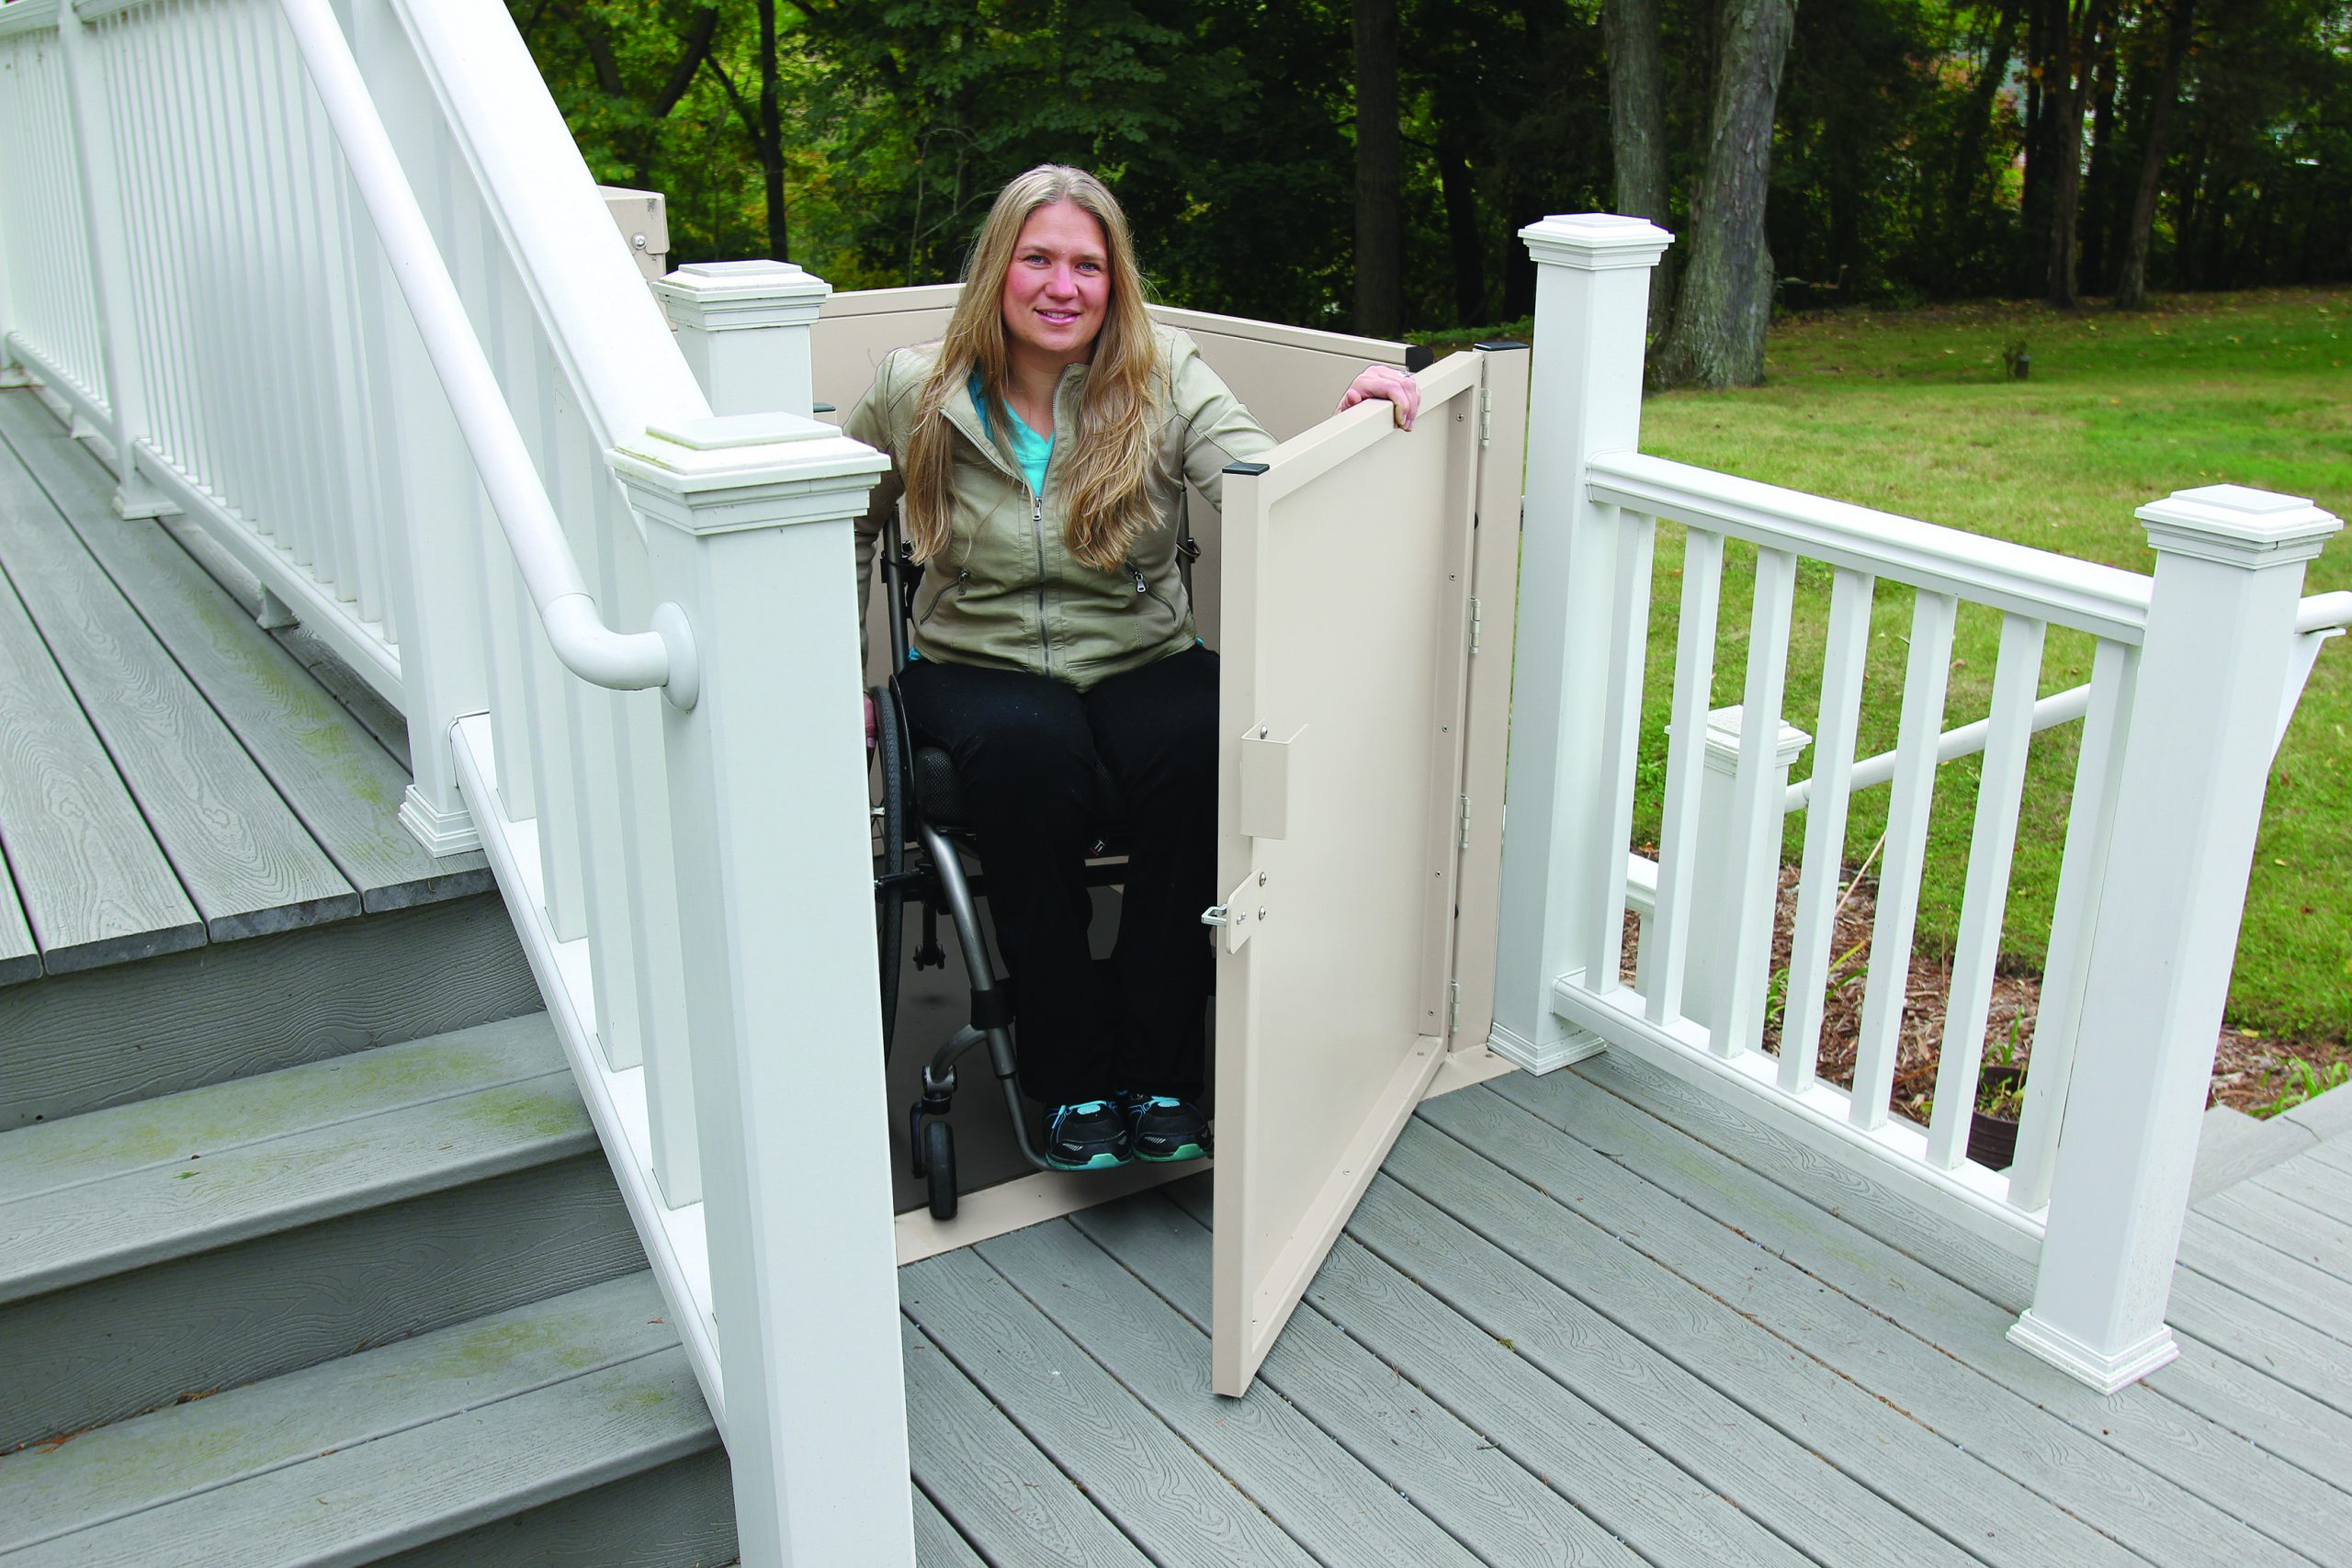 A woman outside using the Bruno Residential Vertical Platform Lift to get up and down stairs in a wheelchair